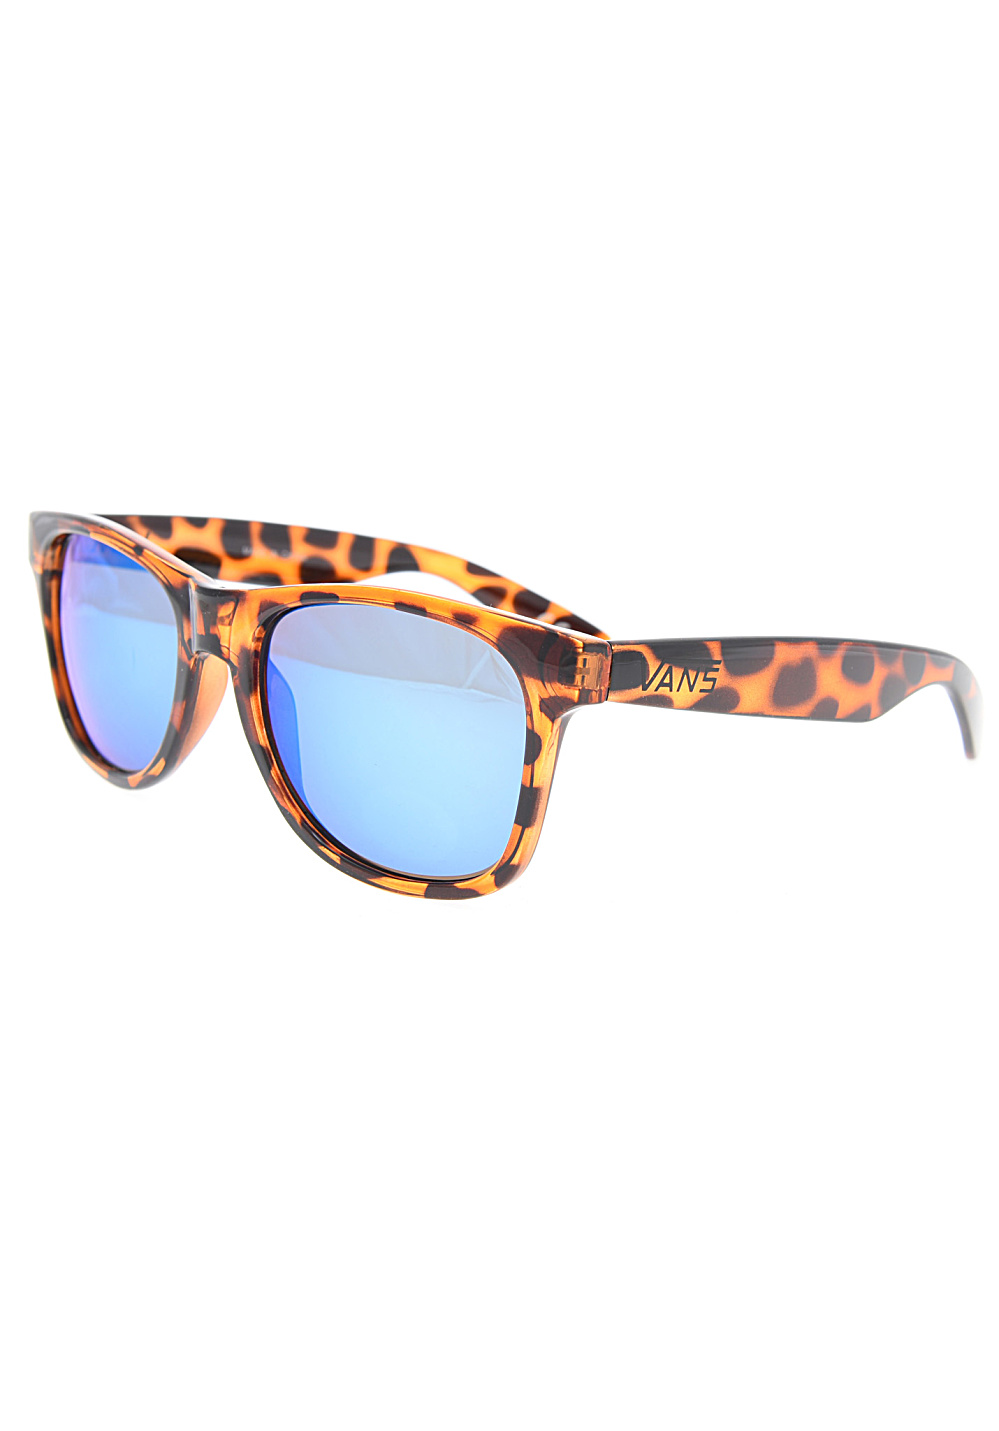 36f3b9df0d Vans Spicoli 4 Shades - Sunglasses for Men - Brown - Planet Sports